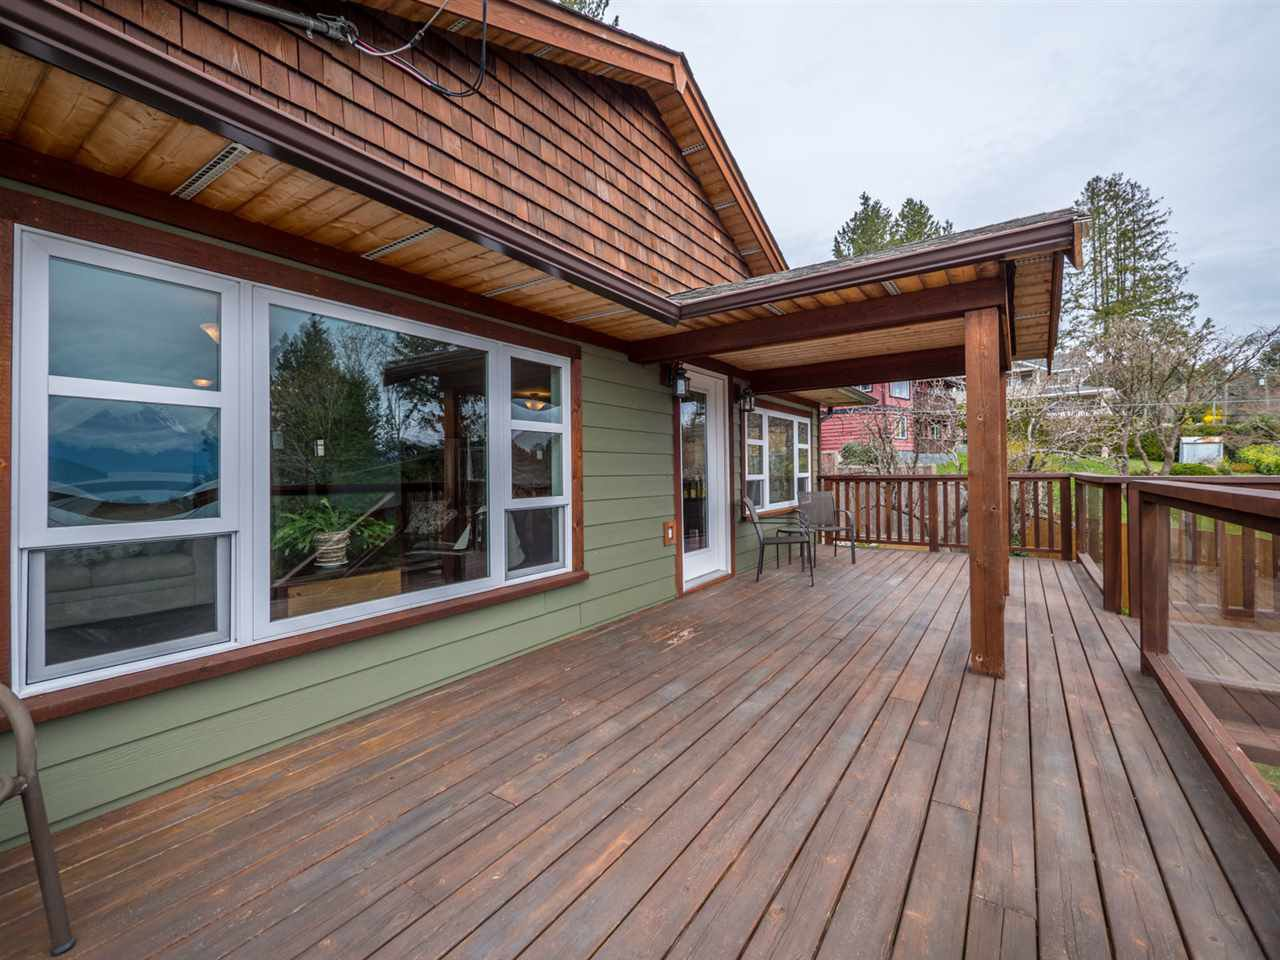 Photo 15: Photos: 588 N FLETCHER Road in Gibsons: Gibsons & Area House for sale (Sunshine Coast)  : MLS®# R2254074